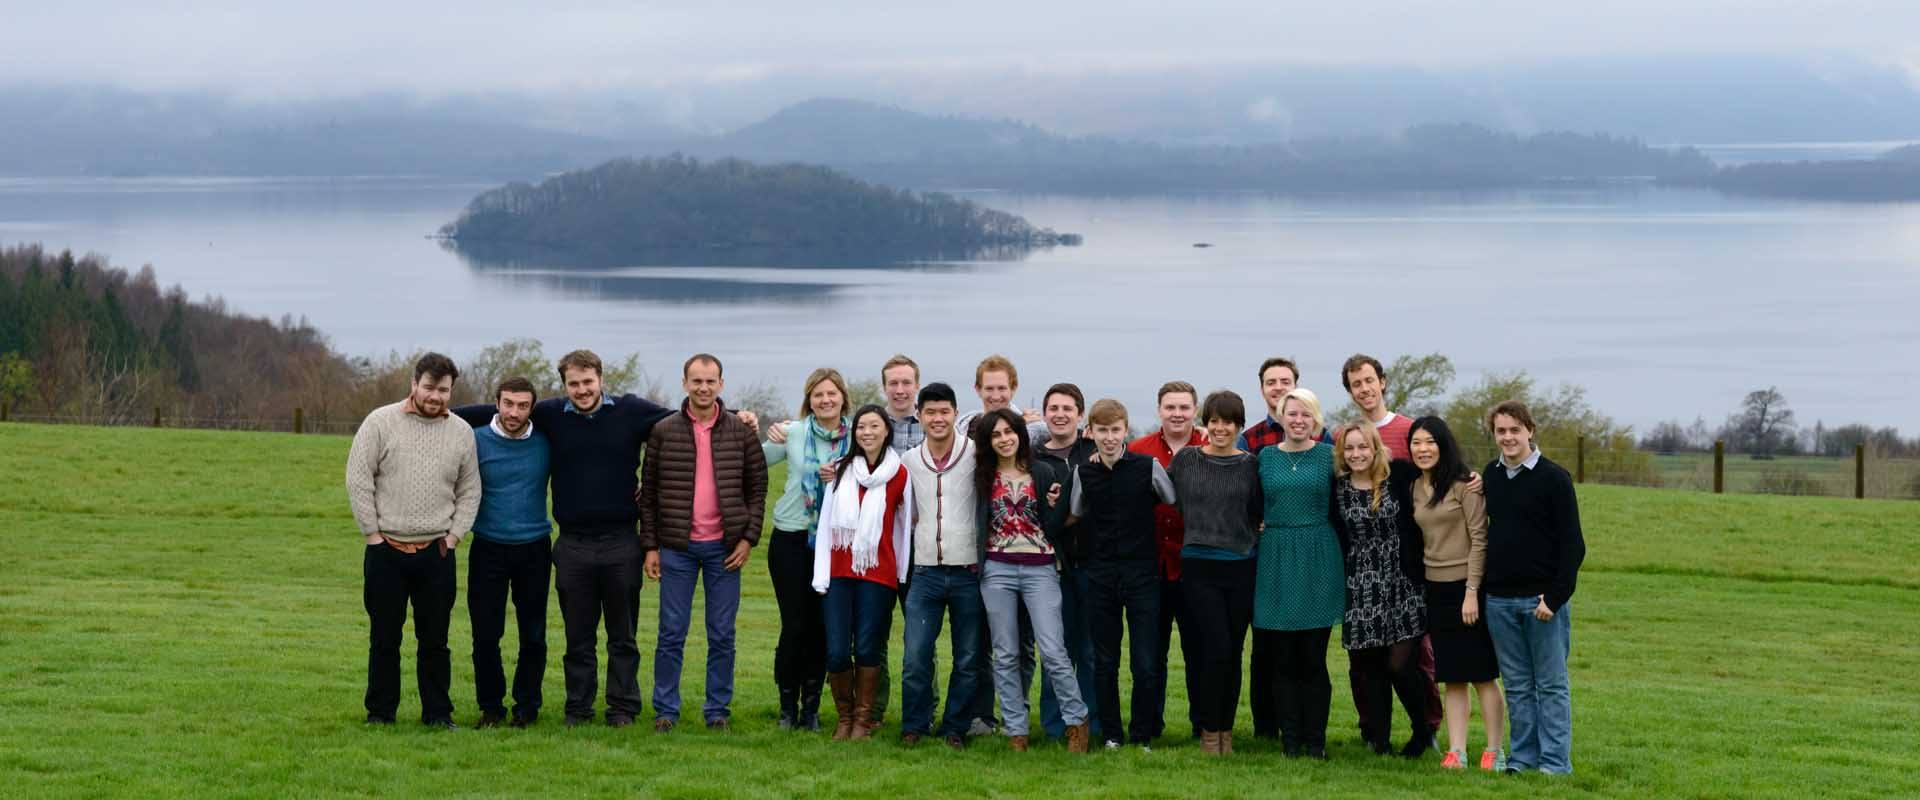 Group photo at POY Ardoch 2014, the final event in the first Naked Entrepreneur programme